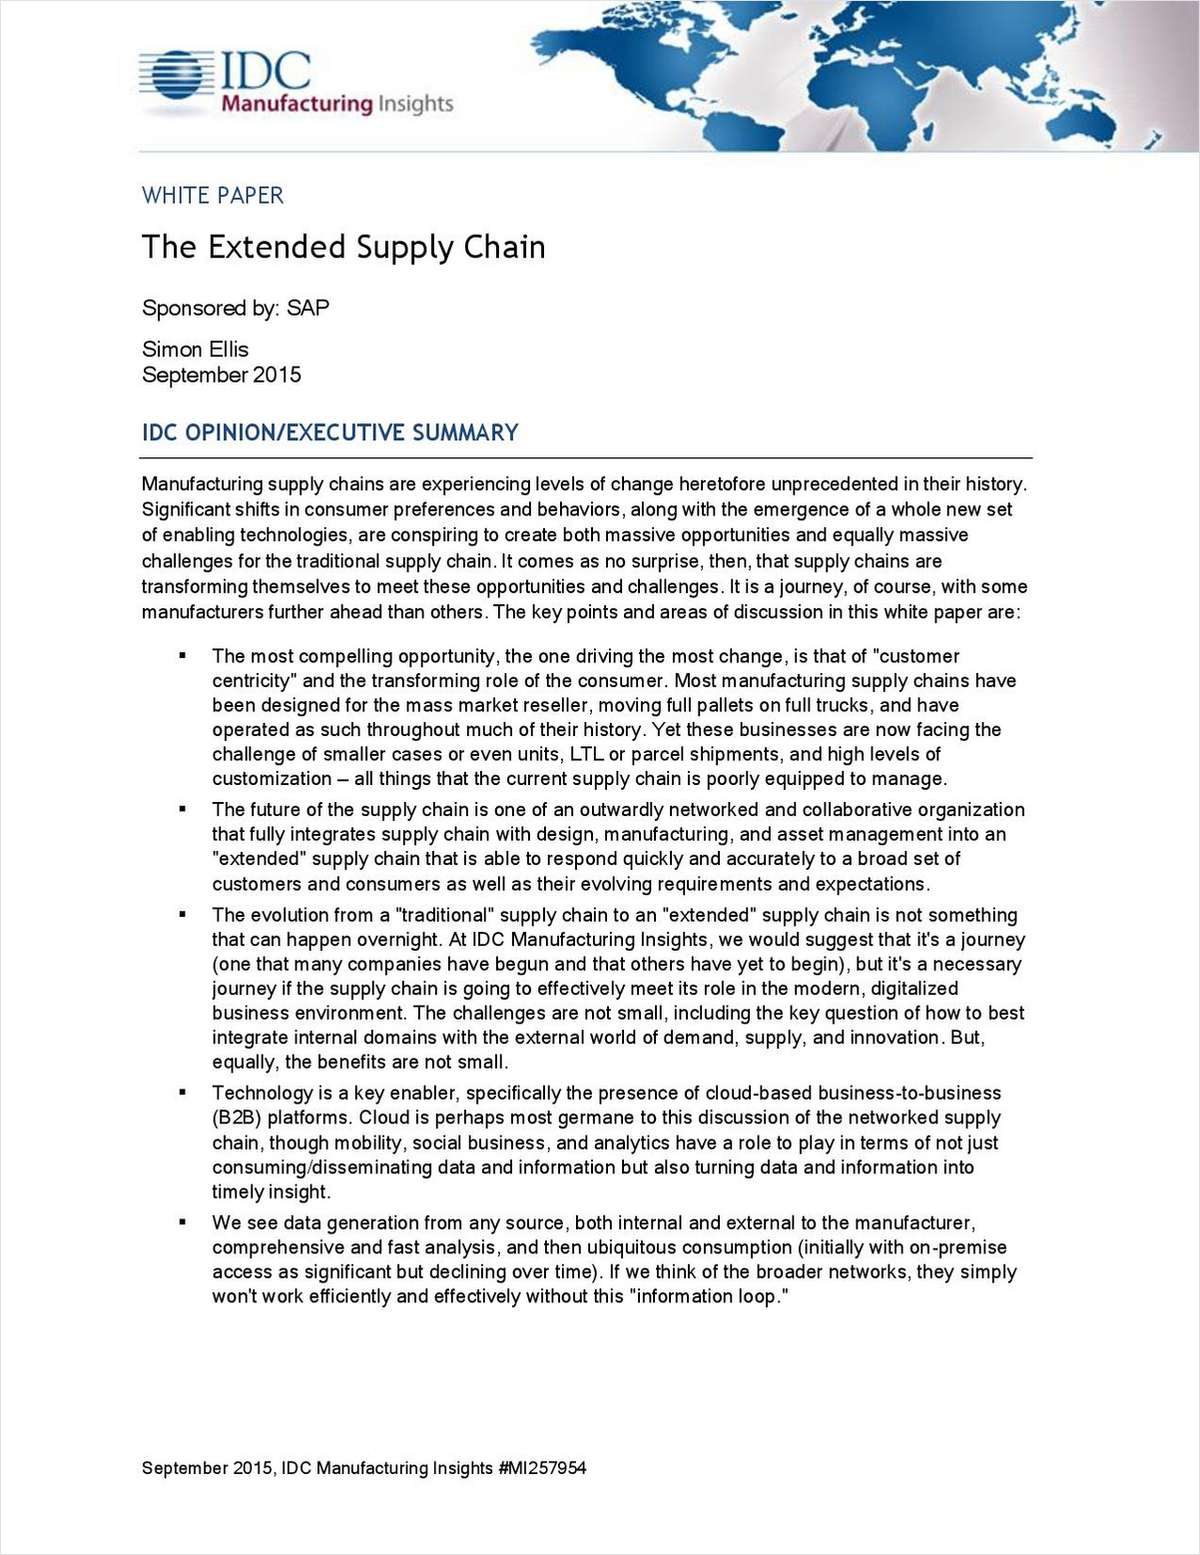 IDC: The Extended Supply Chain